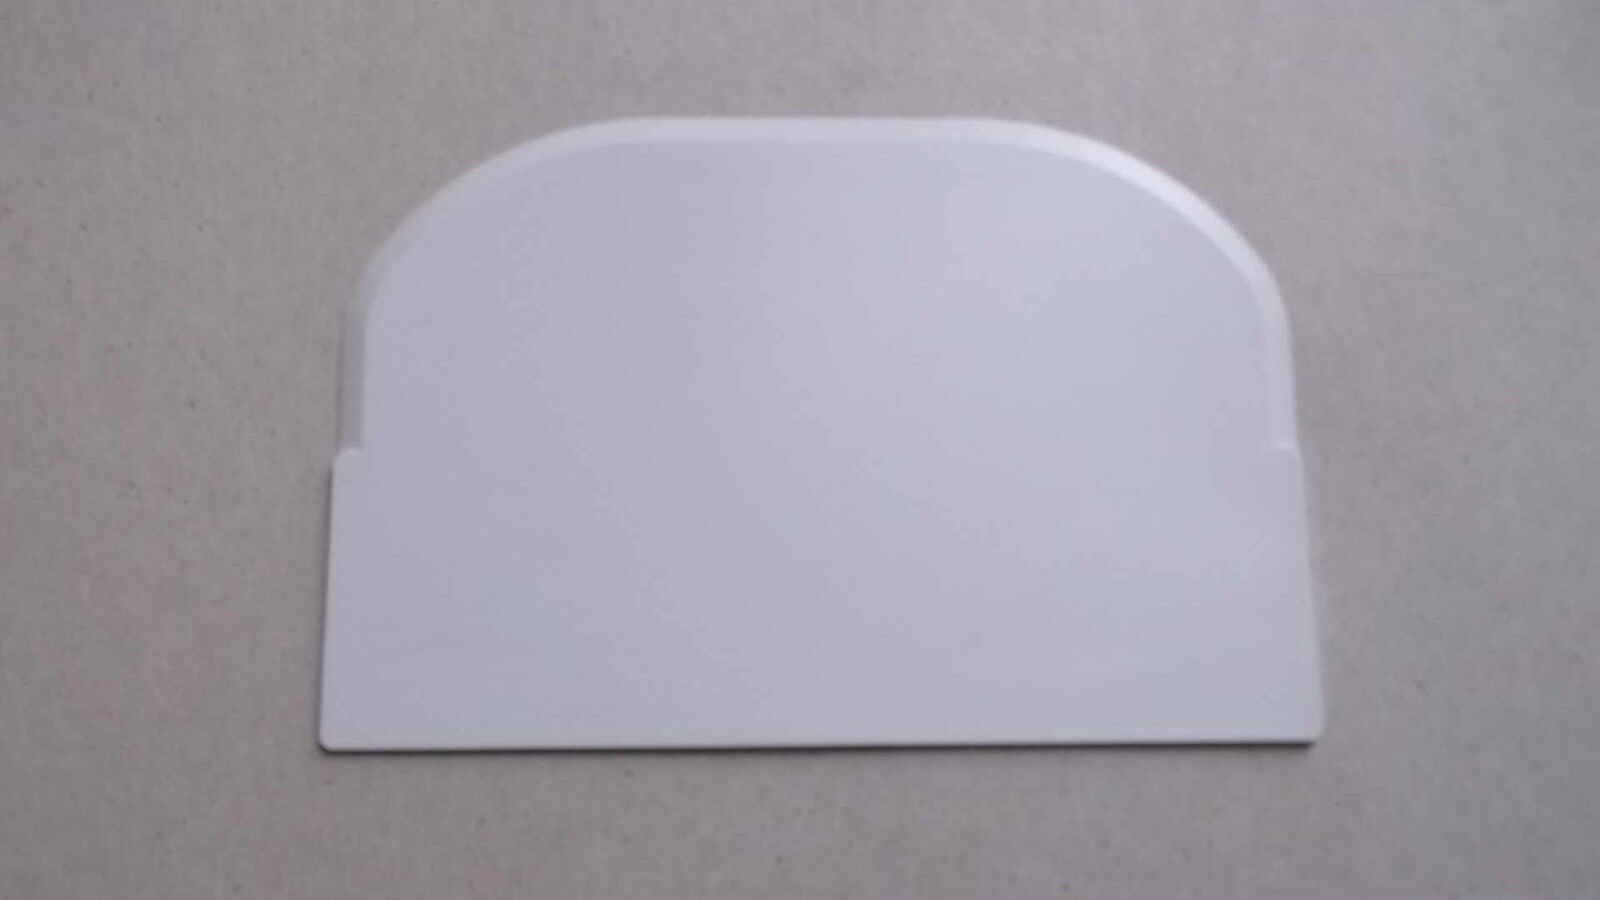 175-New blanc 4 x 6 inch Rigid Plastic Bench Food Bowl Scraper & Icing Smoother